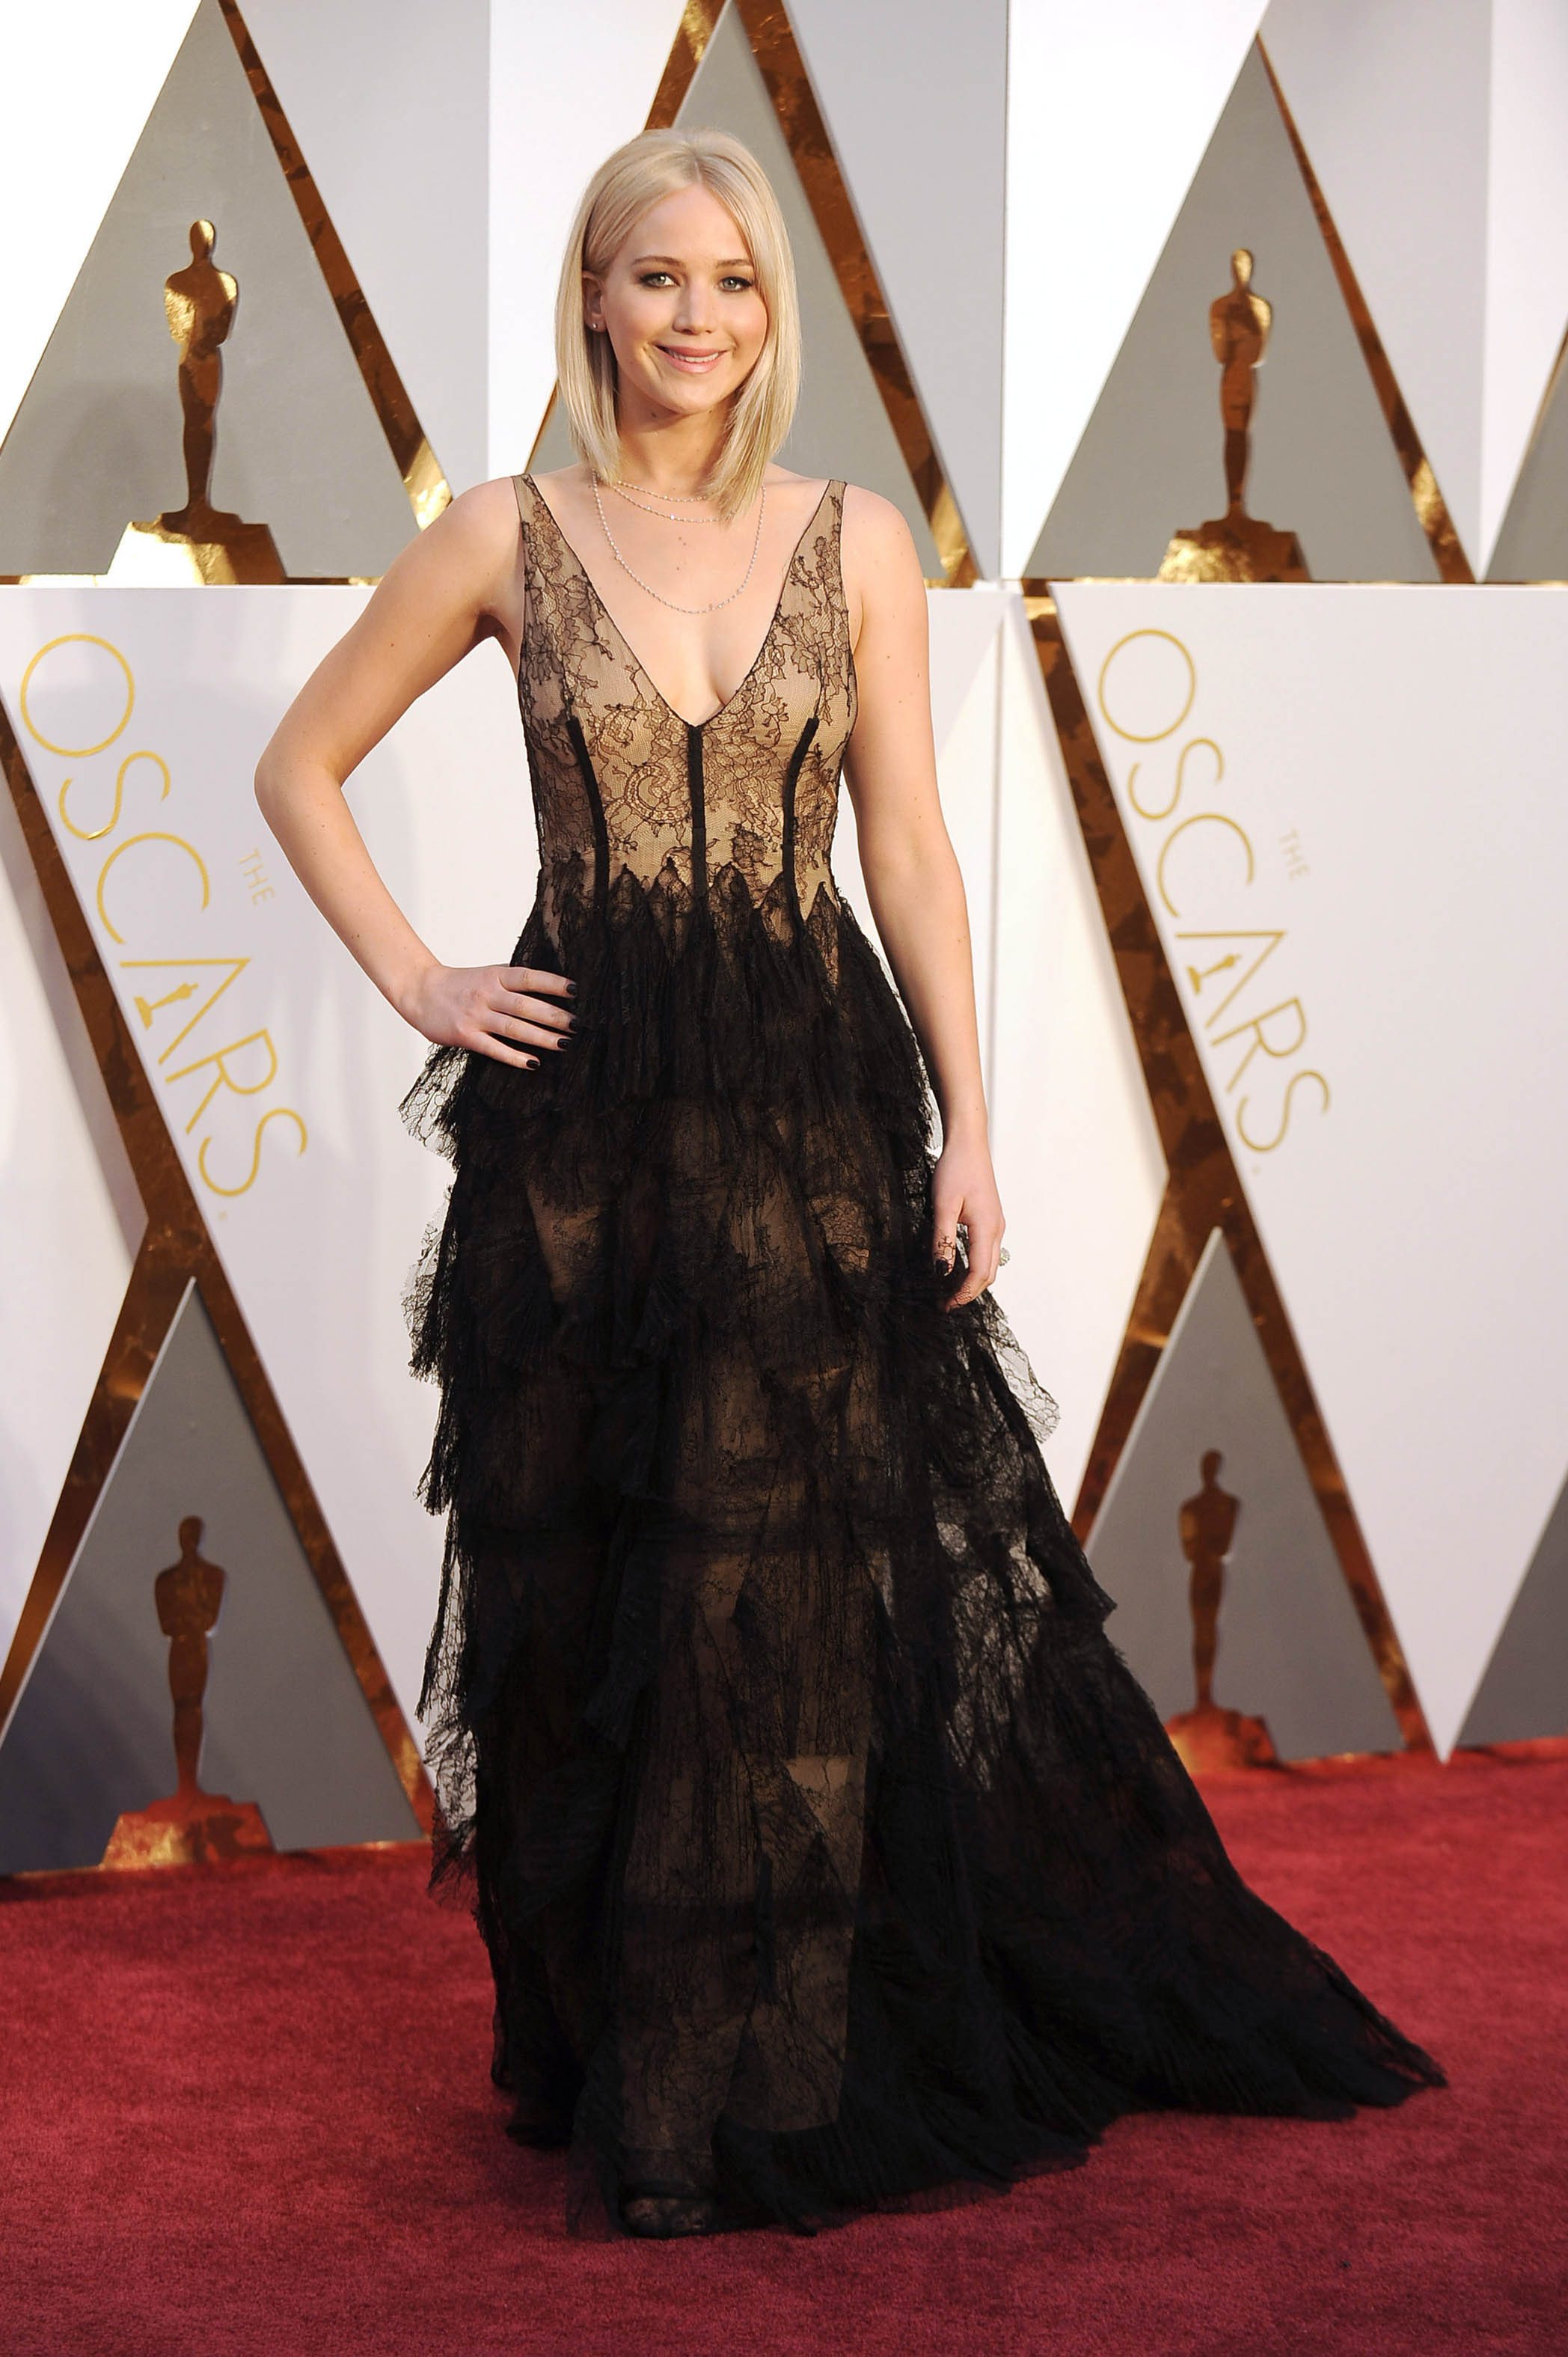 Photo by: KGC-11/starmaxinc.com STAR MAX Copyright 2016 ALL RIGHTS RESERVED Telephone/Fax: (212) 995-1196 2/28/16 Jennifer Lawrence at the 88th Annual Academy Awards (Oscars). (Hollywood, CA, USA)